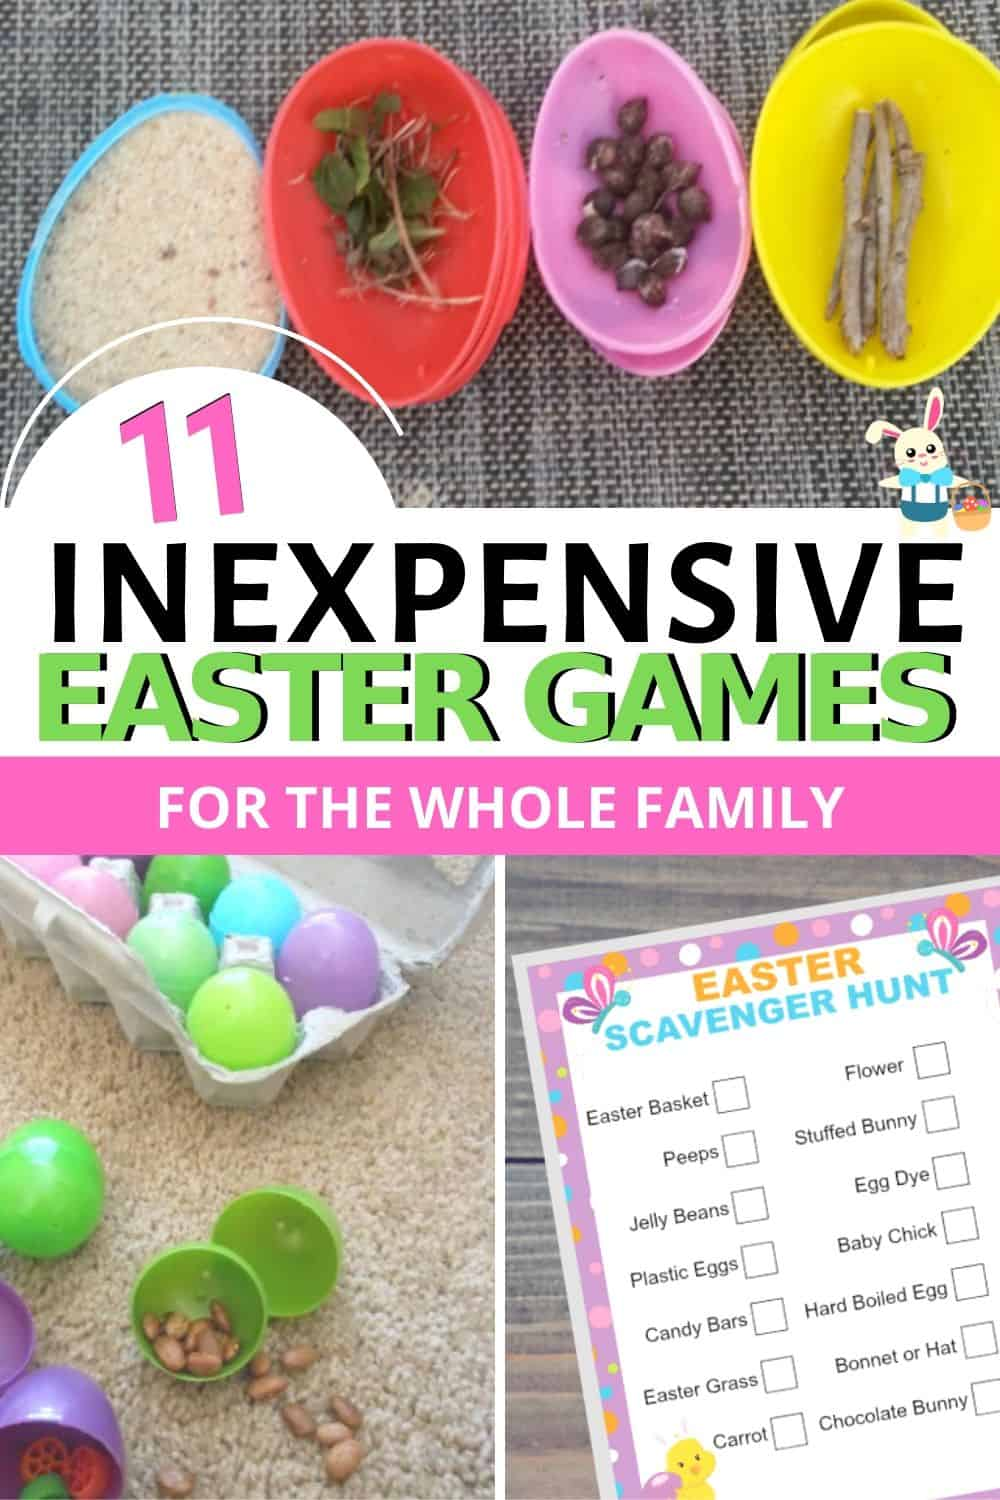 Check out these inexpensive games for the entire family from toddlers to adults, your family will enjoy this affordable games this Easter! via @mystayathome